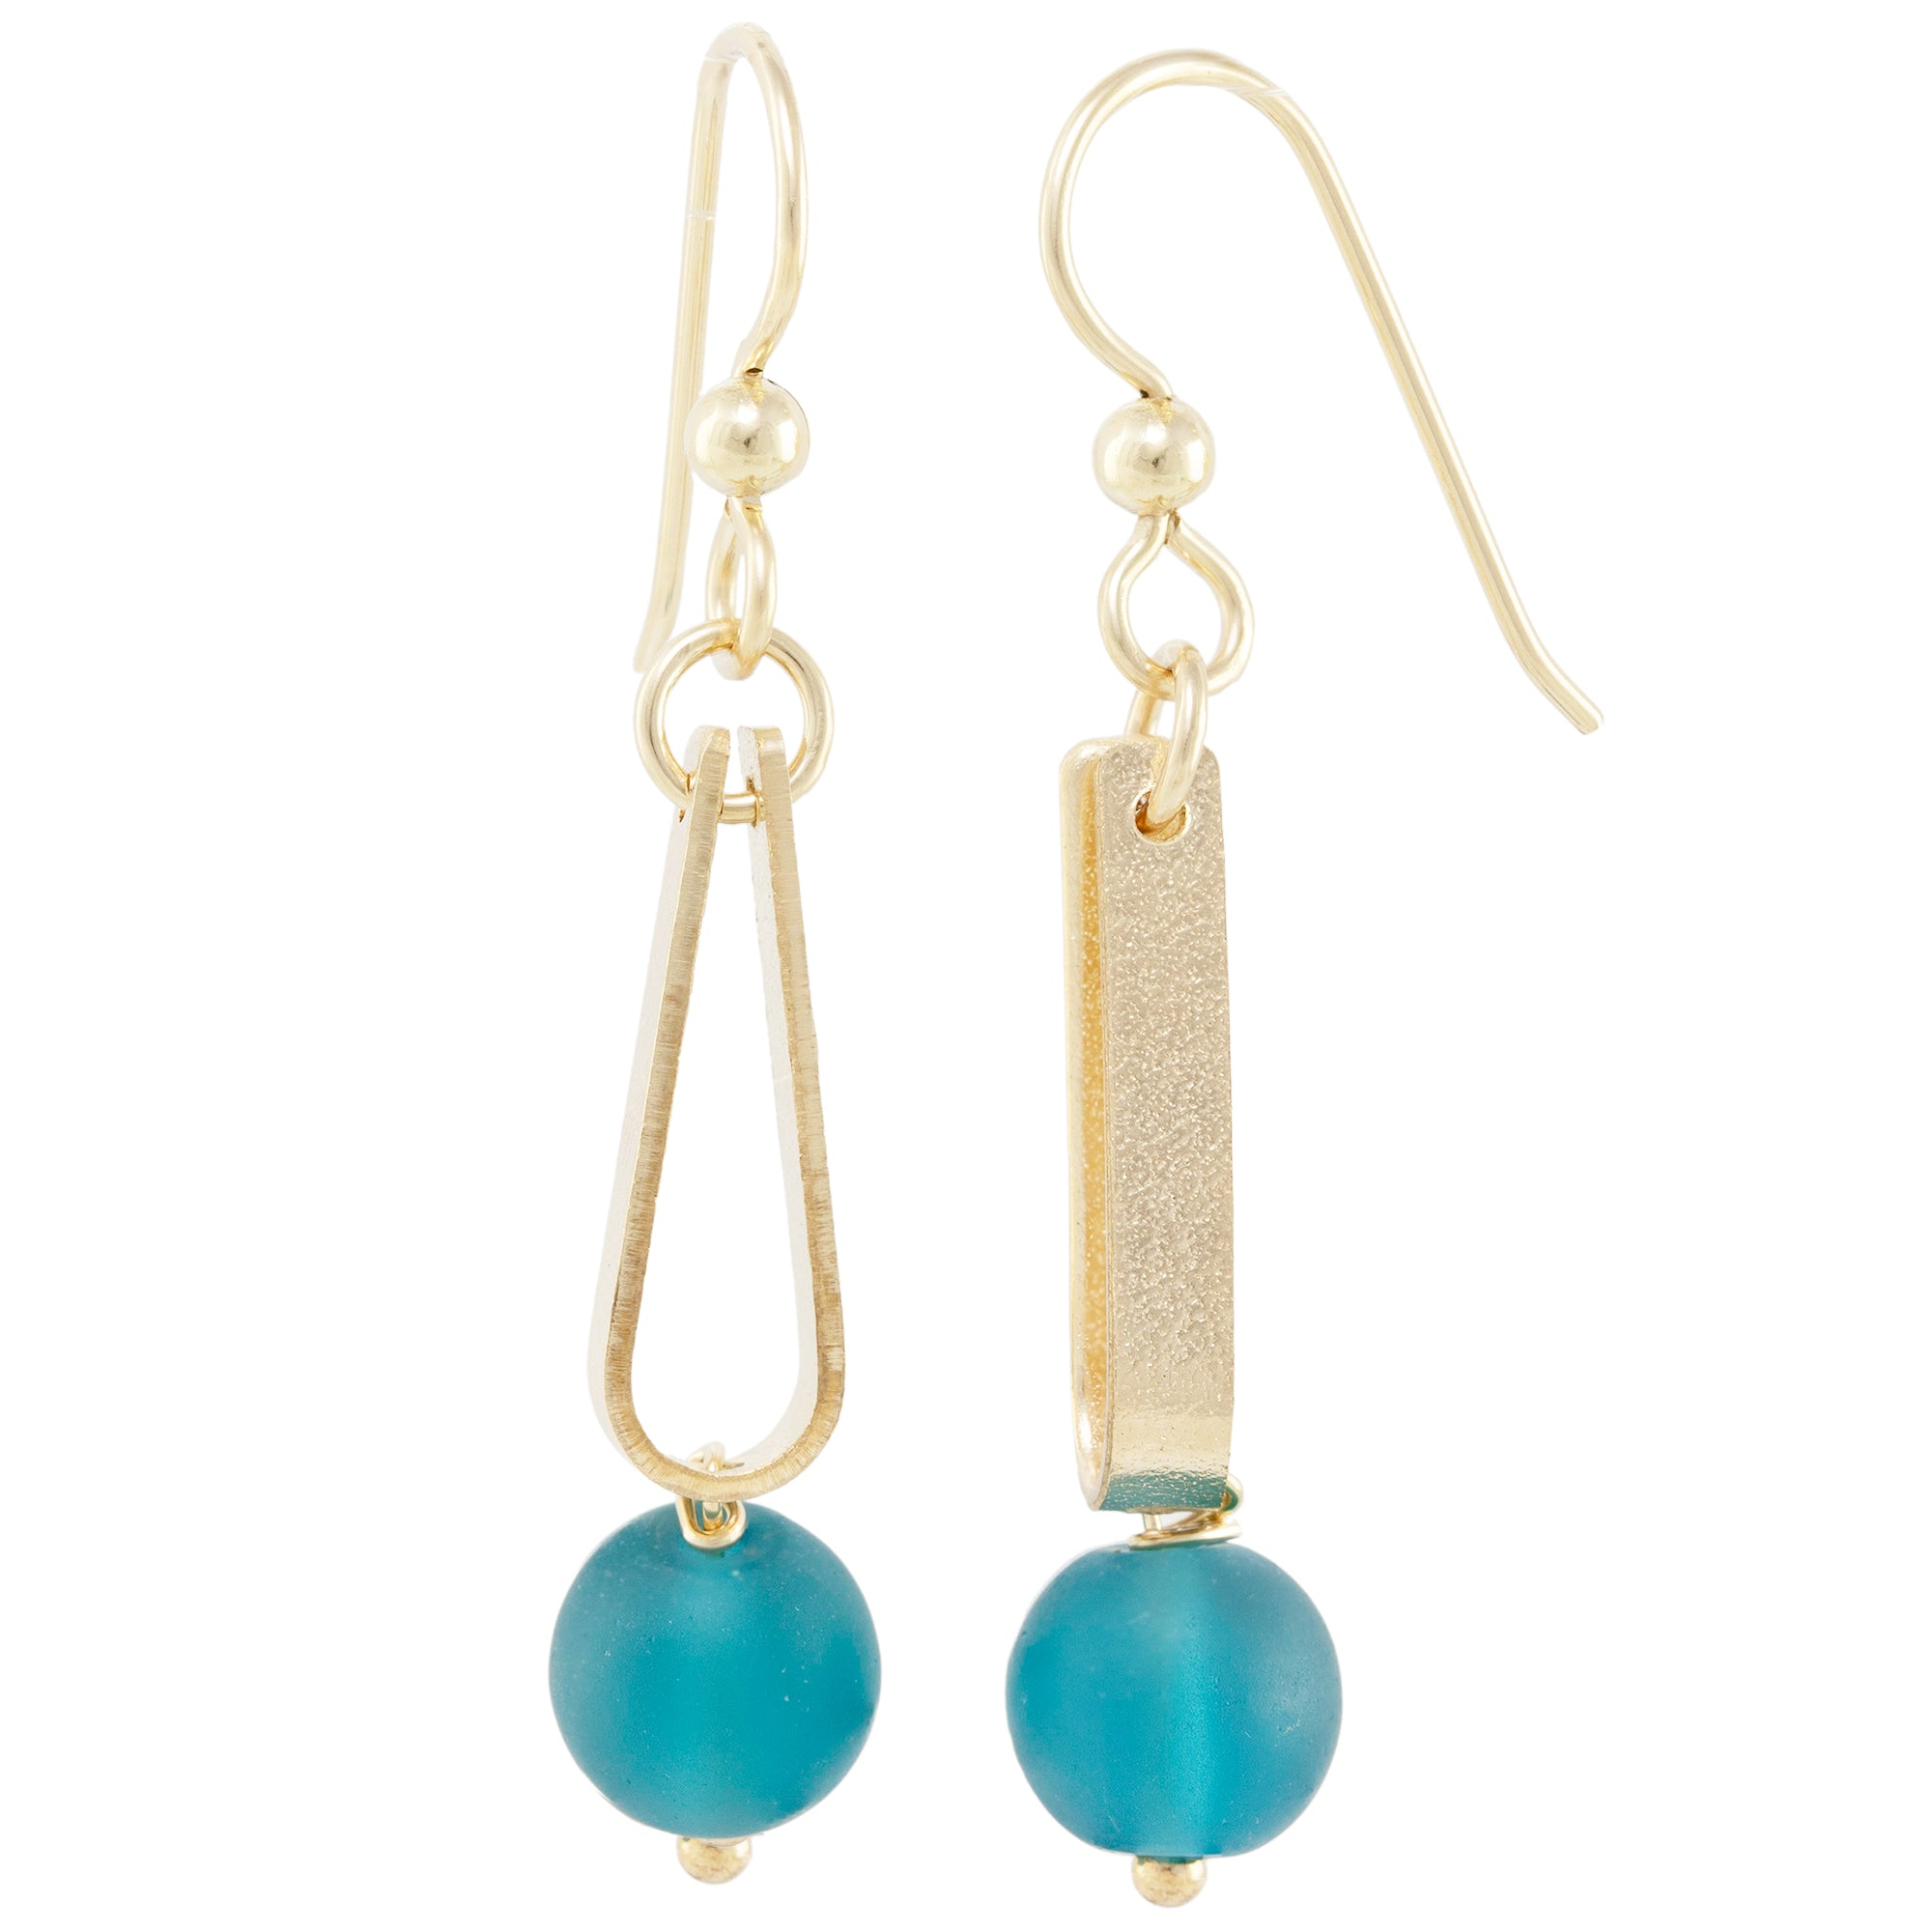 Teal Peacock Blue Round Recycled Glass Ball and 14K Gold Fill Strap Style Dangle Earrings